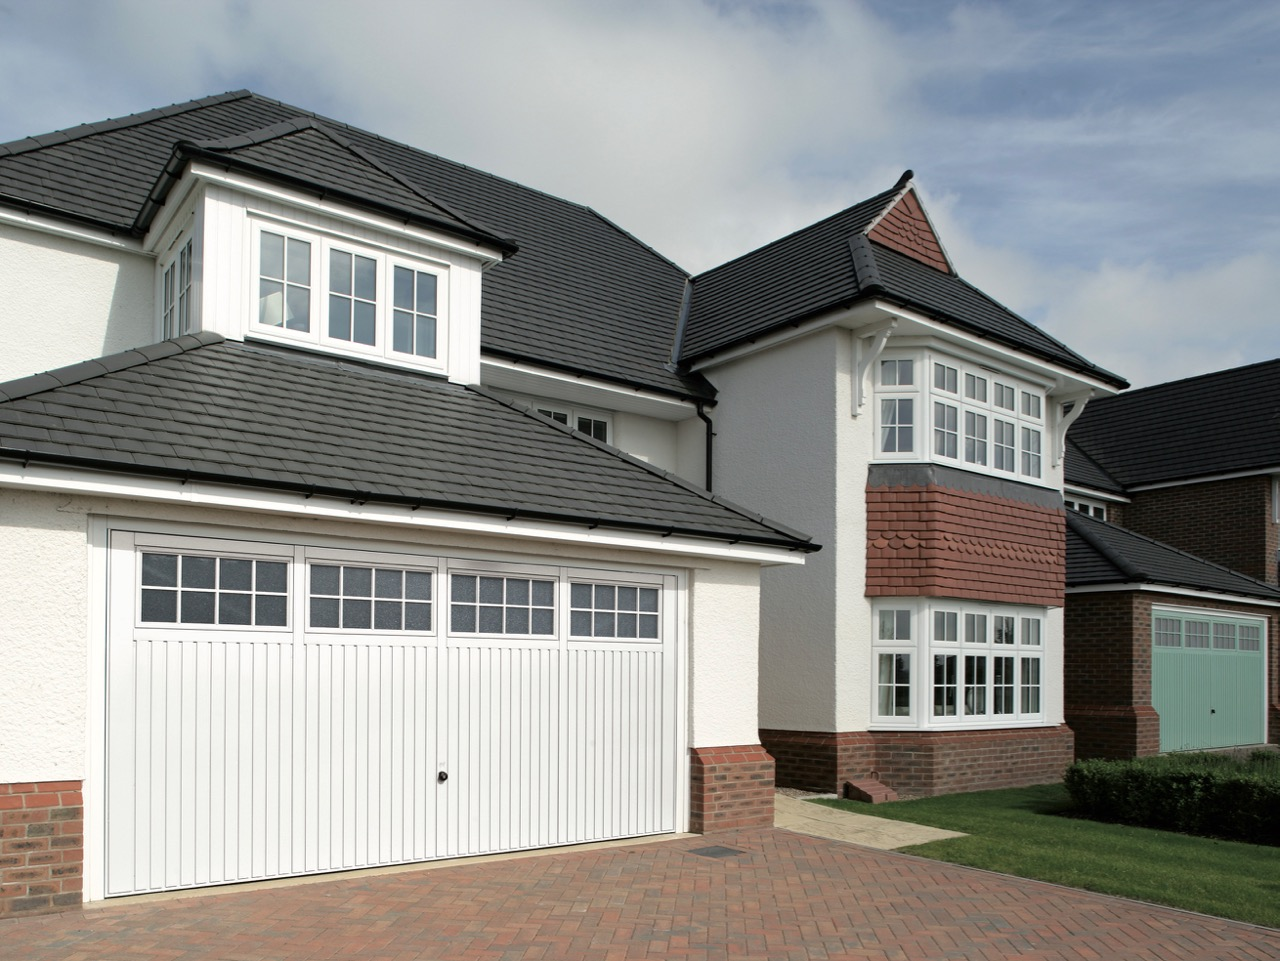 garage doors online door omaha company collection commercial center design of impression overhead residential